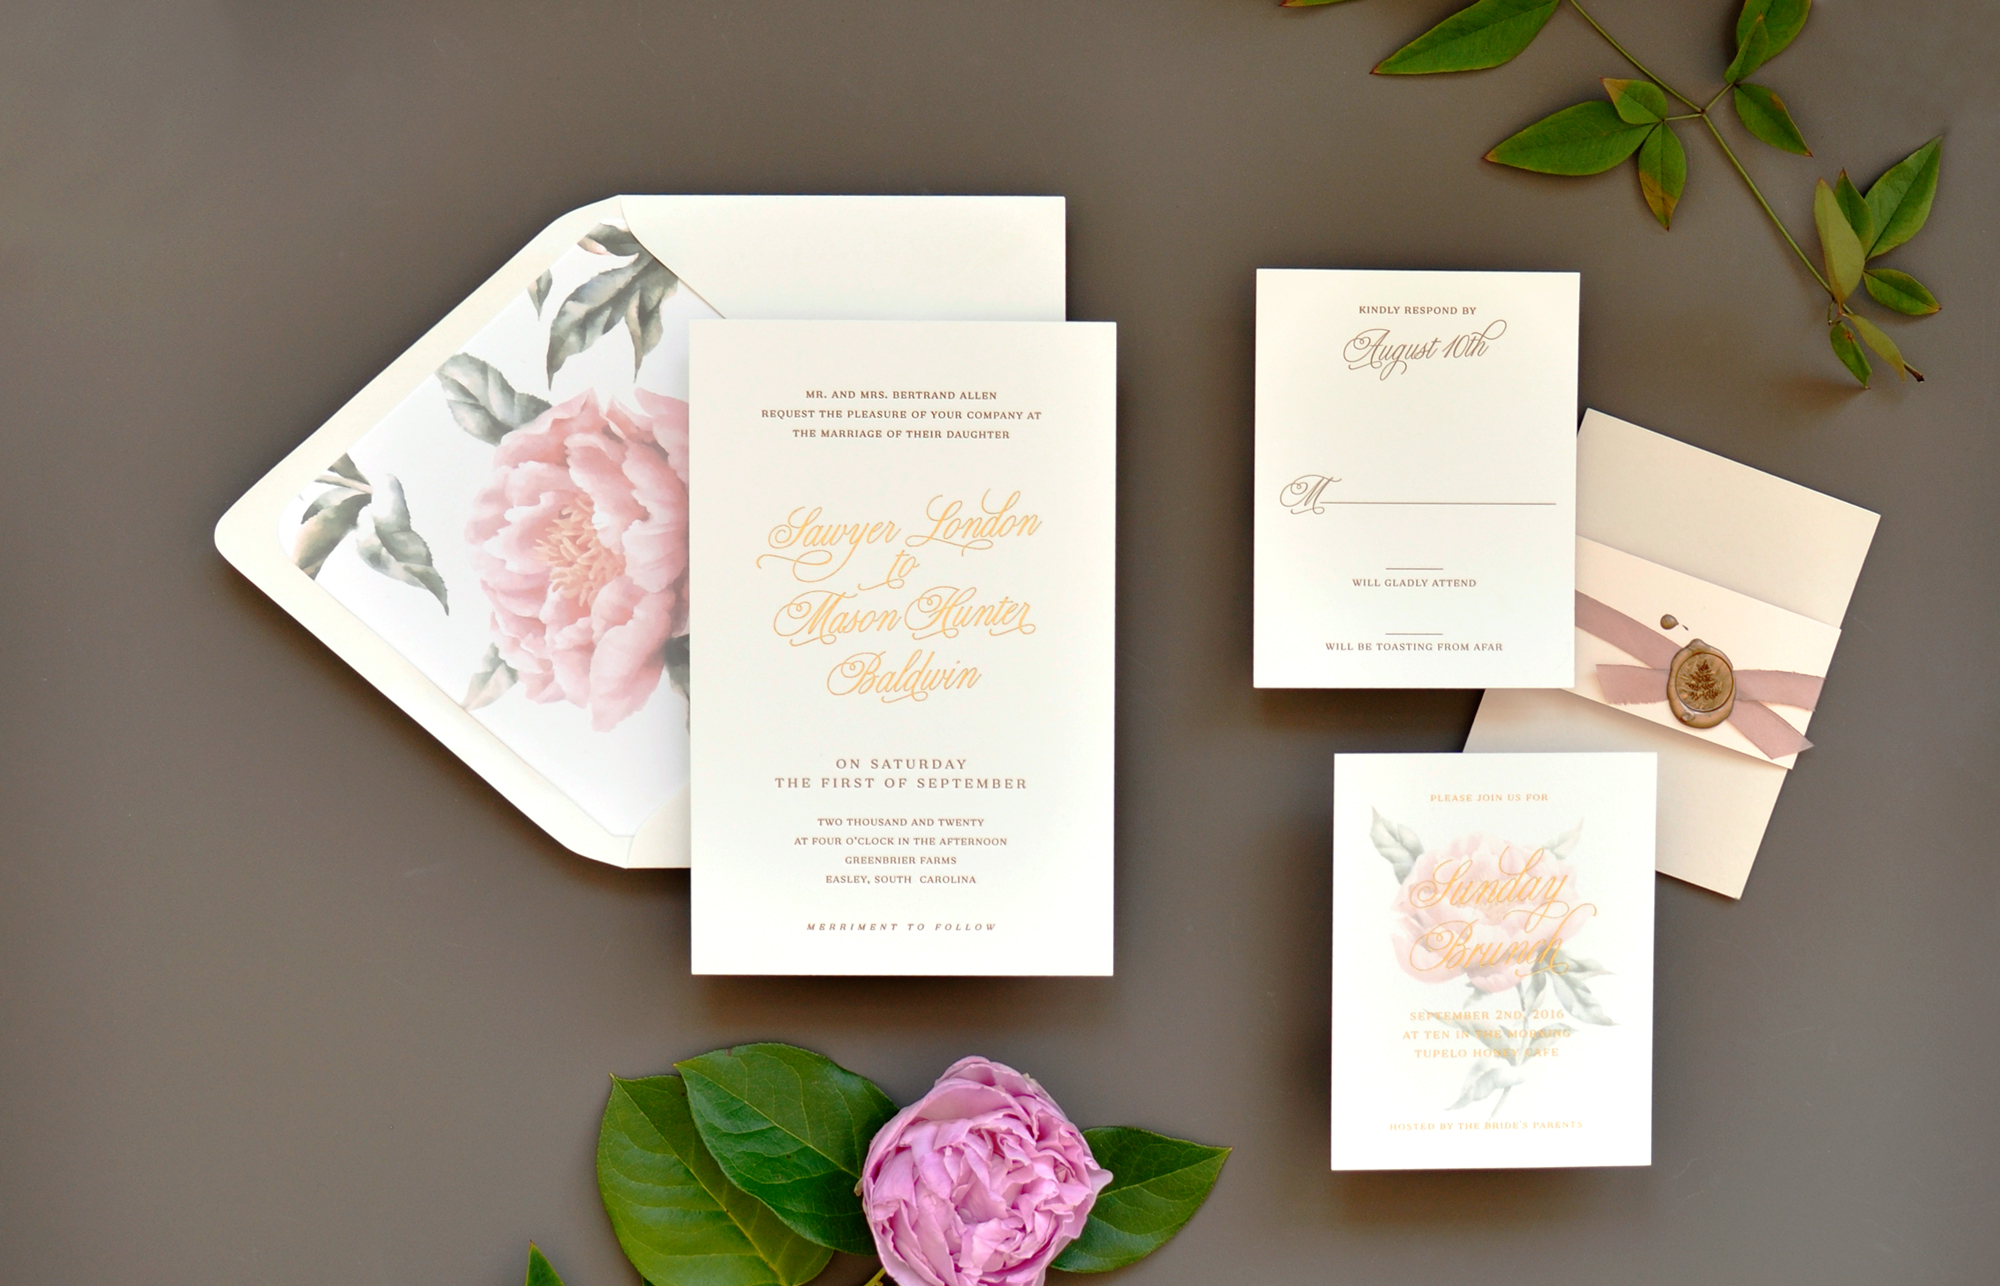 A subtle slope to the script names in gold foil adds a touch of modern to this very classic letterpress and foil wedding invitation.